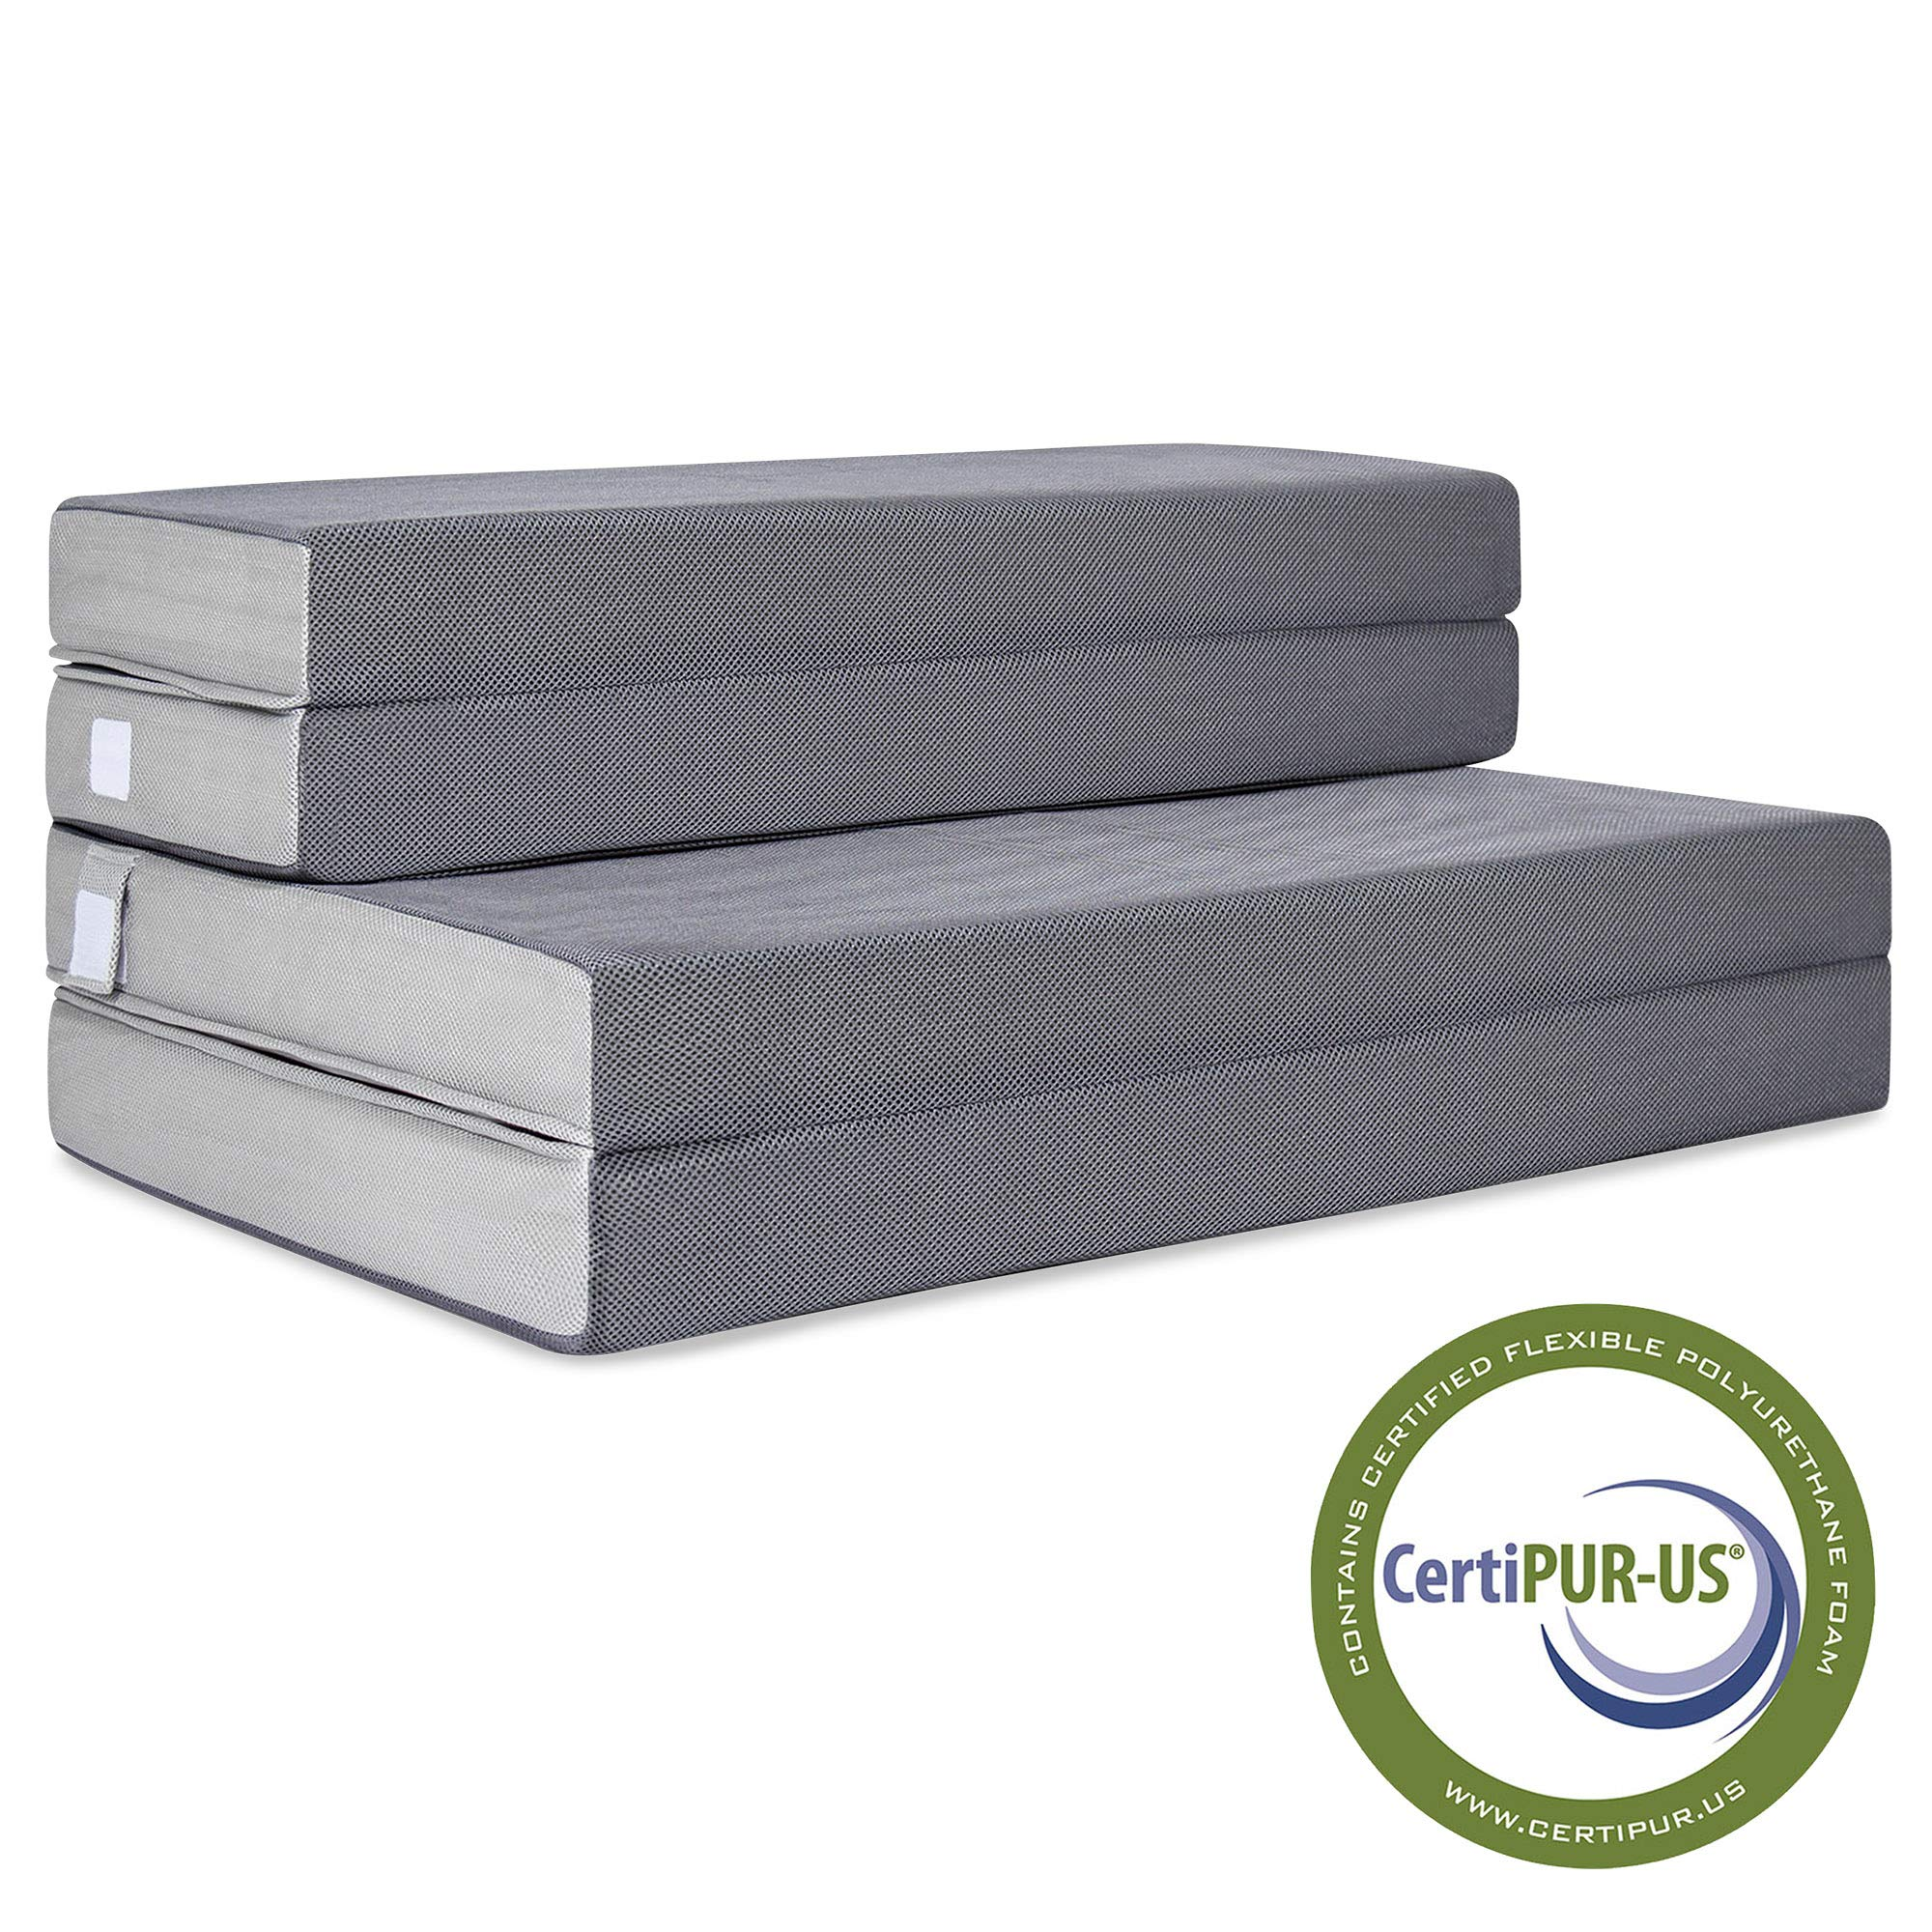 Best Choice Products 4in Thick Folding Portable Full Mattress Topper w/ High-Density Foam, Washable Cover by Best Choice Products